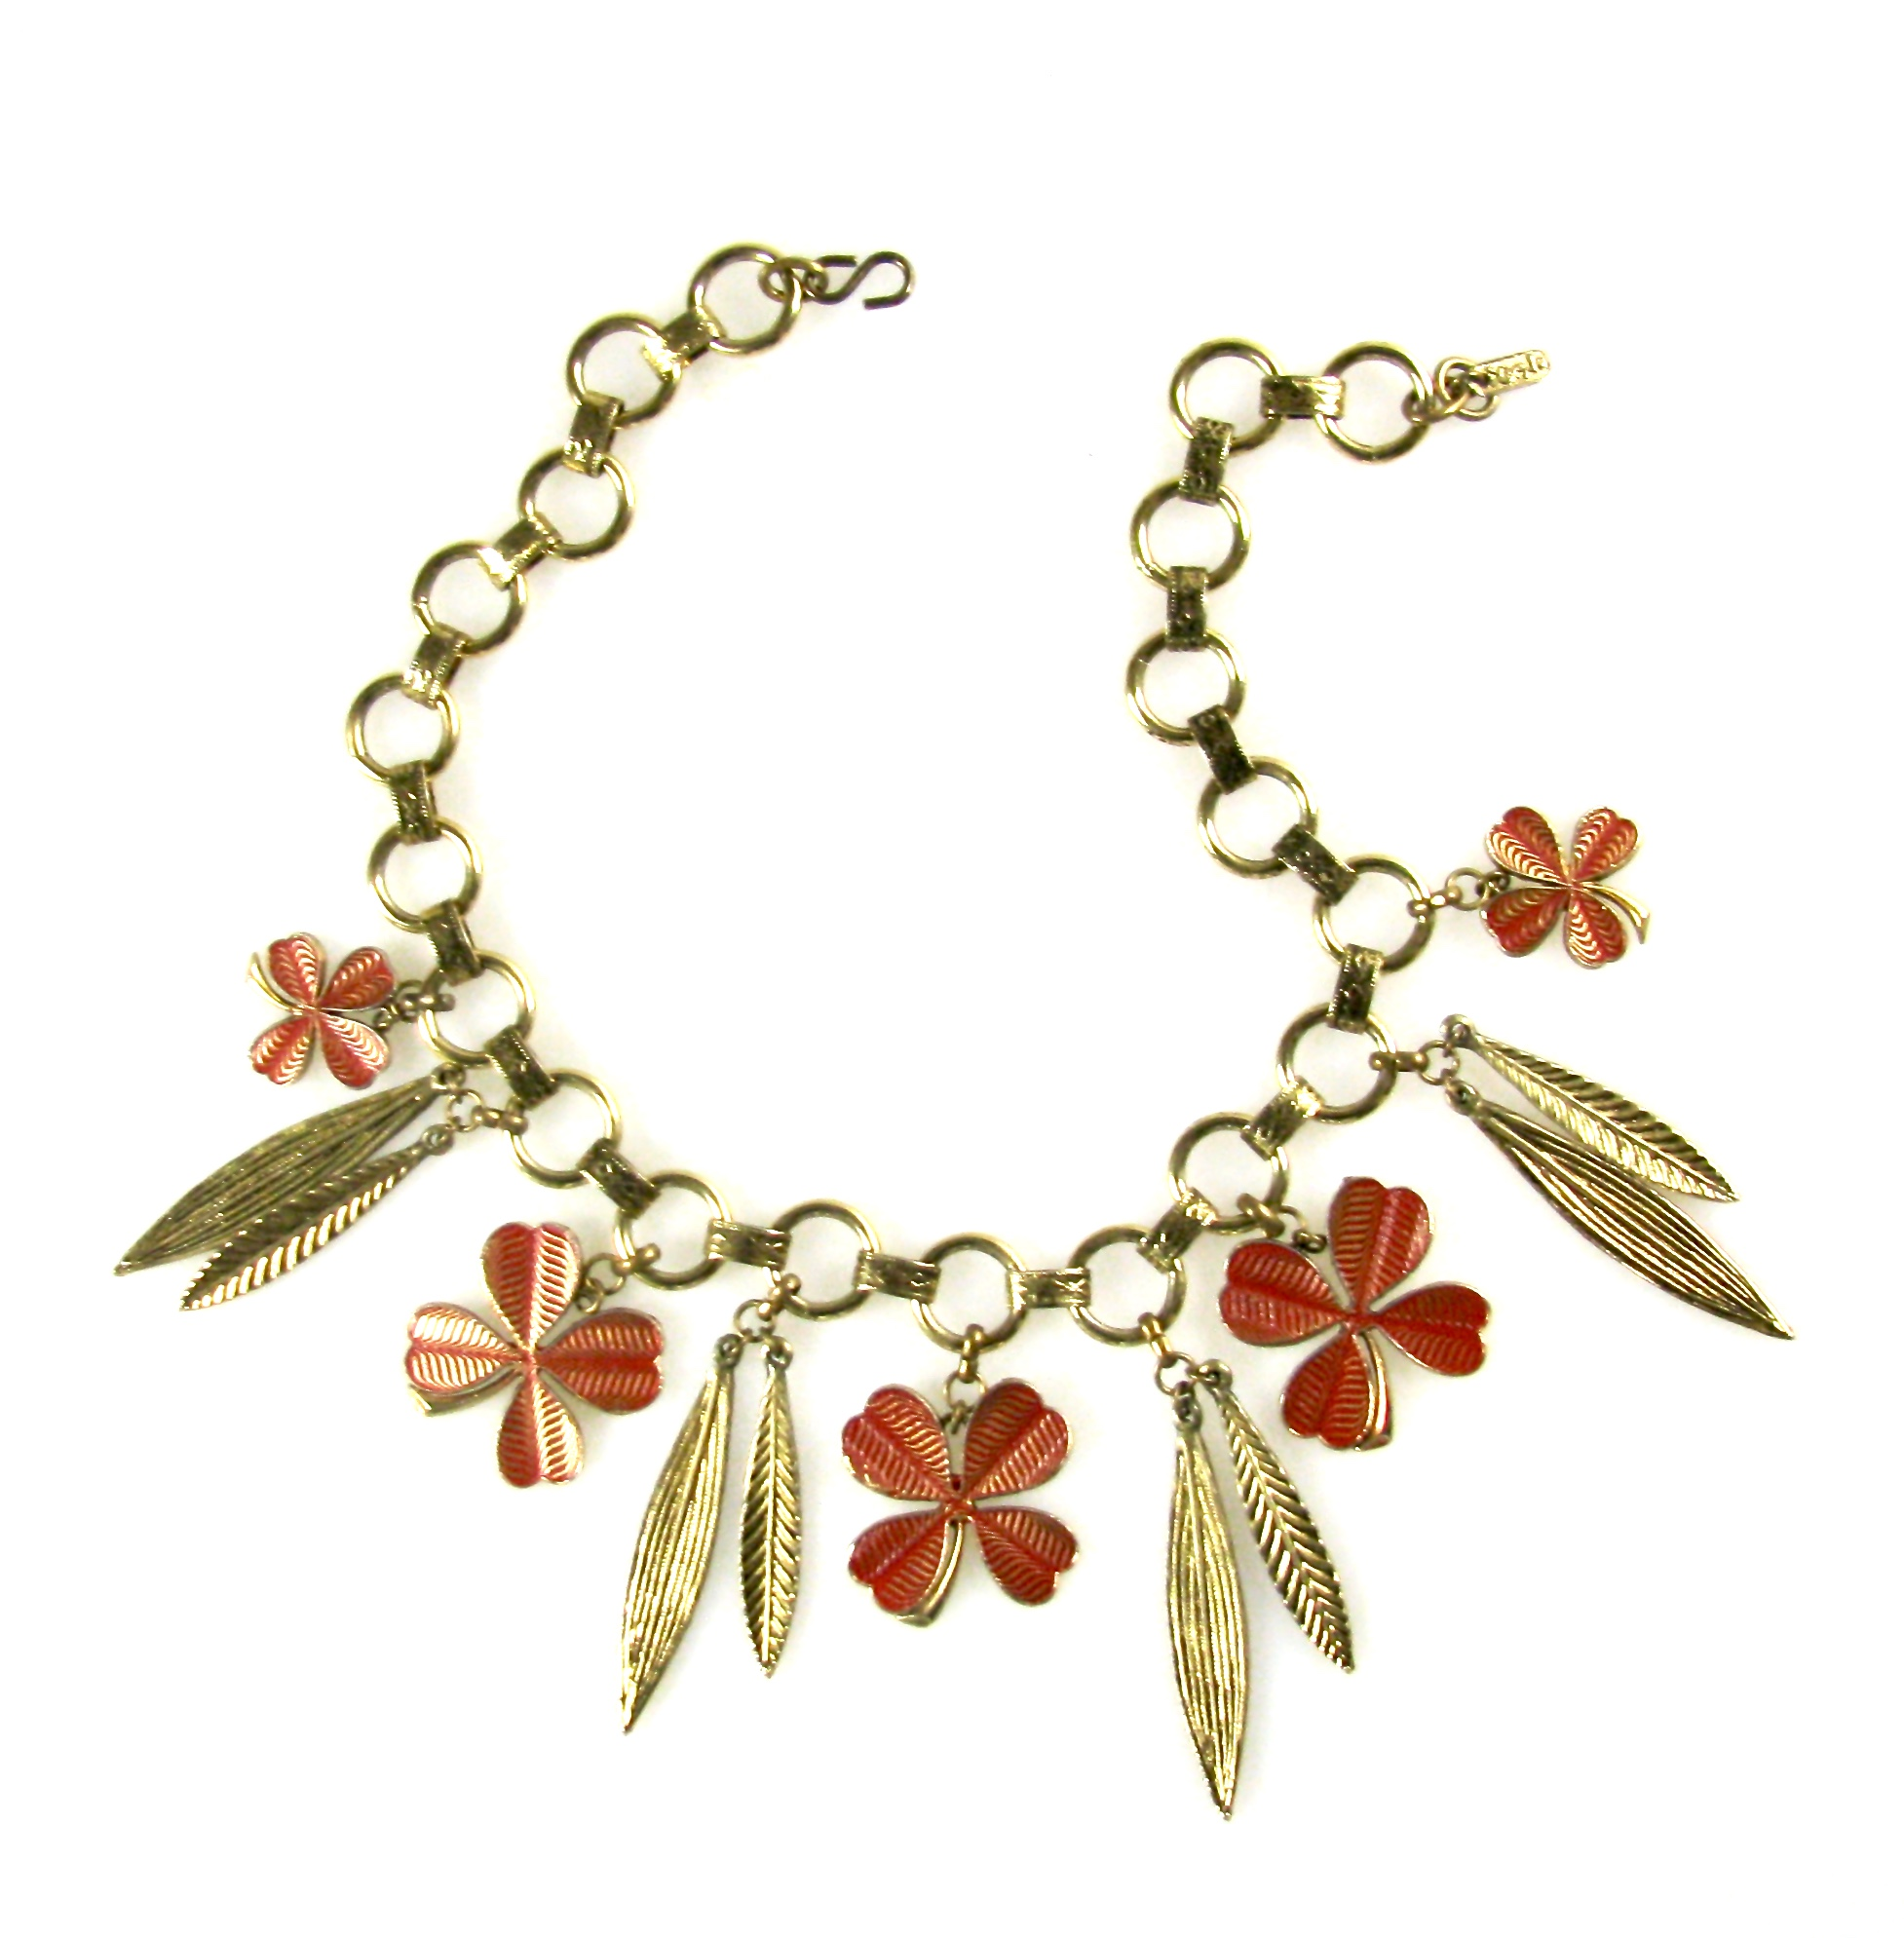 YSL Four Leaf Clover Enamel Bib Necklace 60/70s